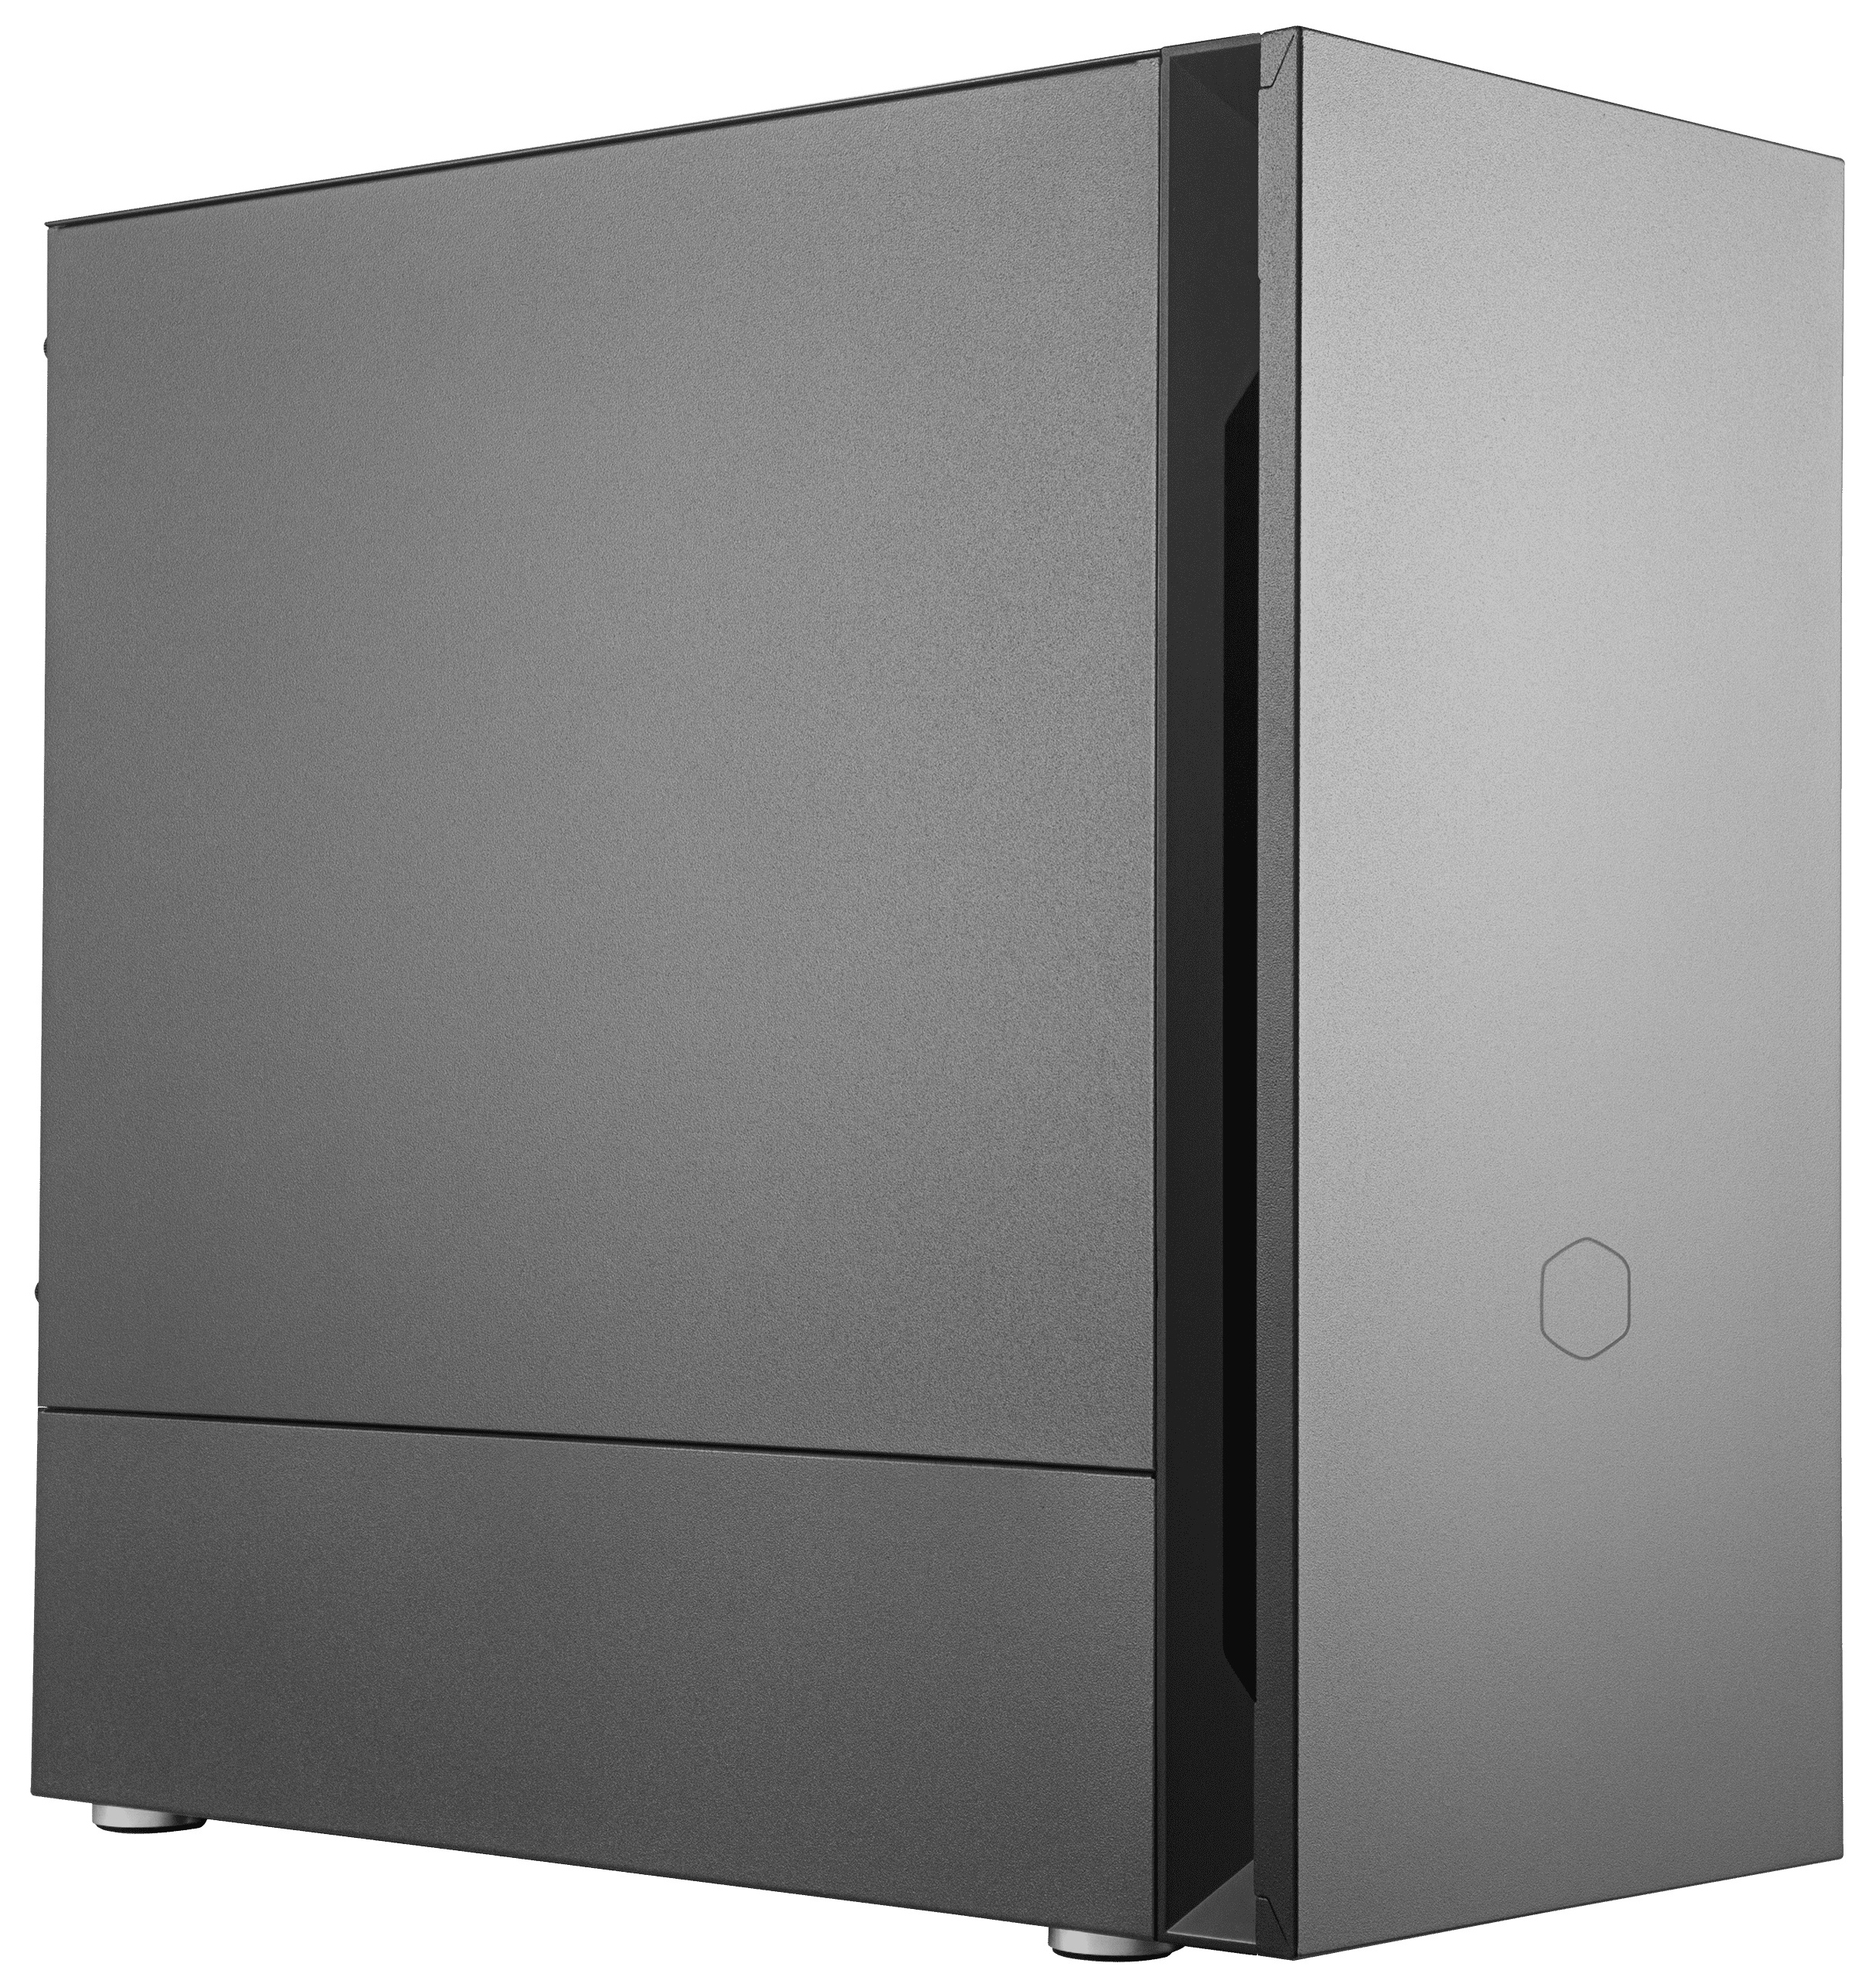 COOLER MASTER SILENCIO  S400 (W/ STEEL  SIDE PANEL)